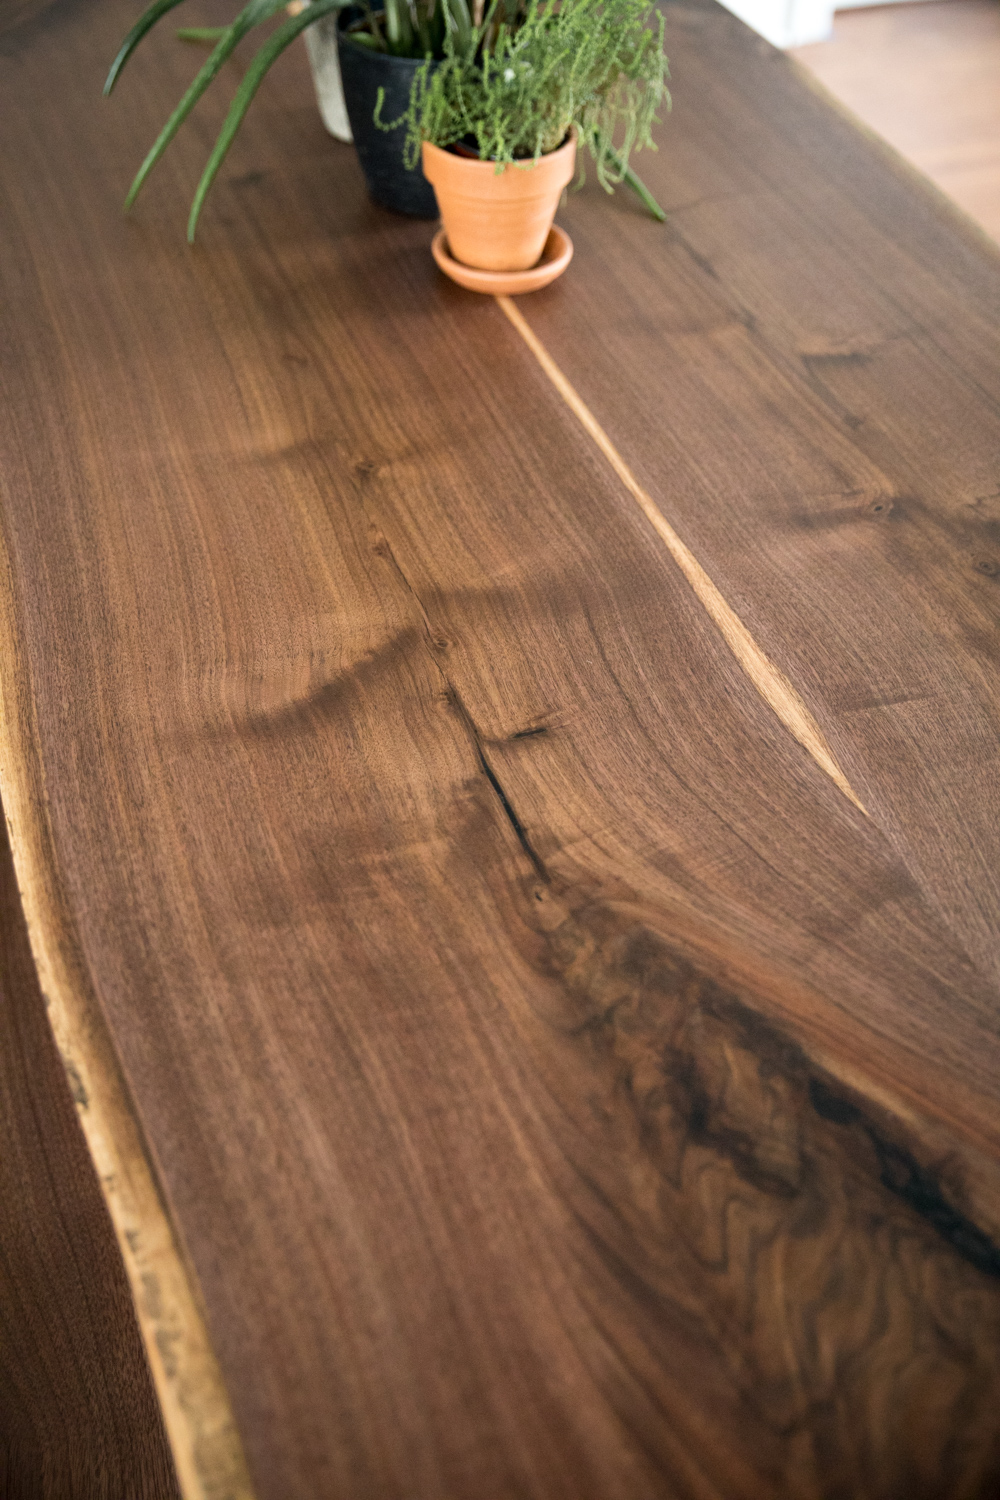 Big Tooth Co_Fort Wayne Indianapolis Woodworking _Walnut Dining Table (44 of 51).jpg